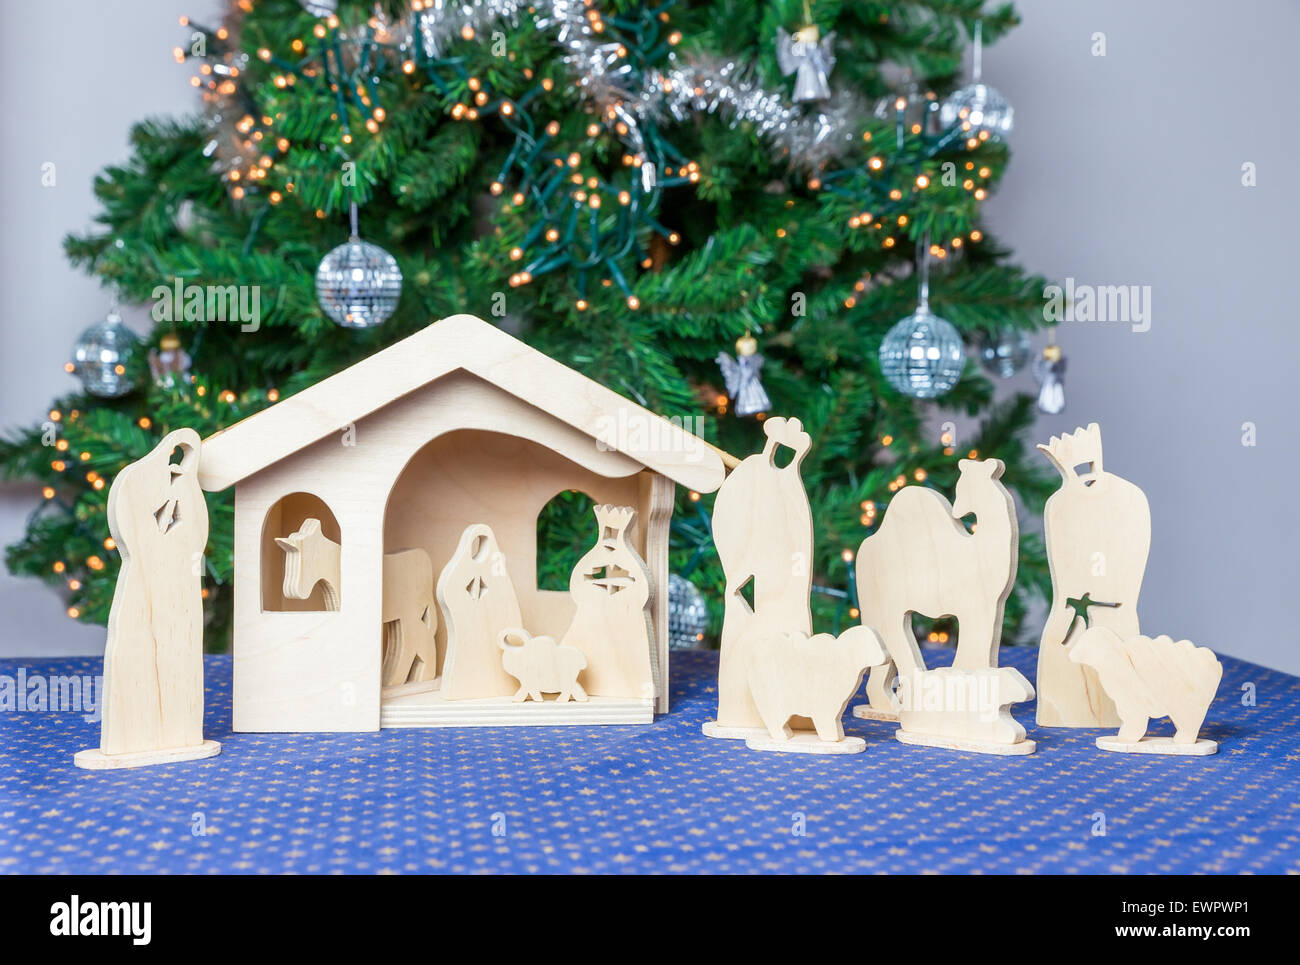 Christmas Stable Background.Wooden Christmas Stable With Bible Figurines And Tree On